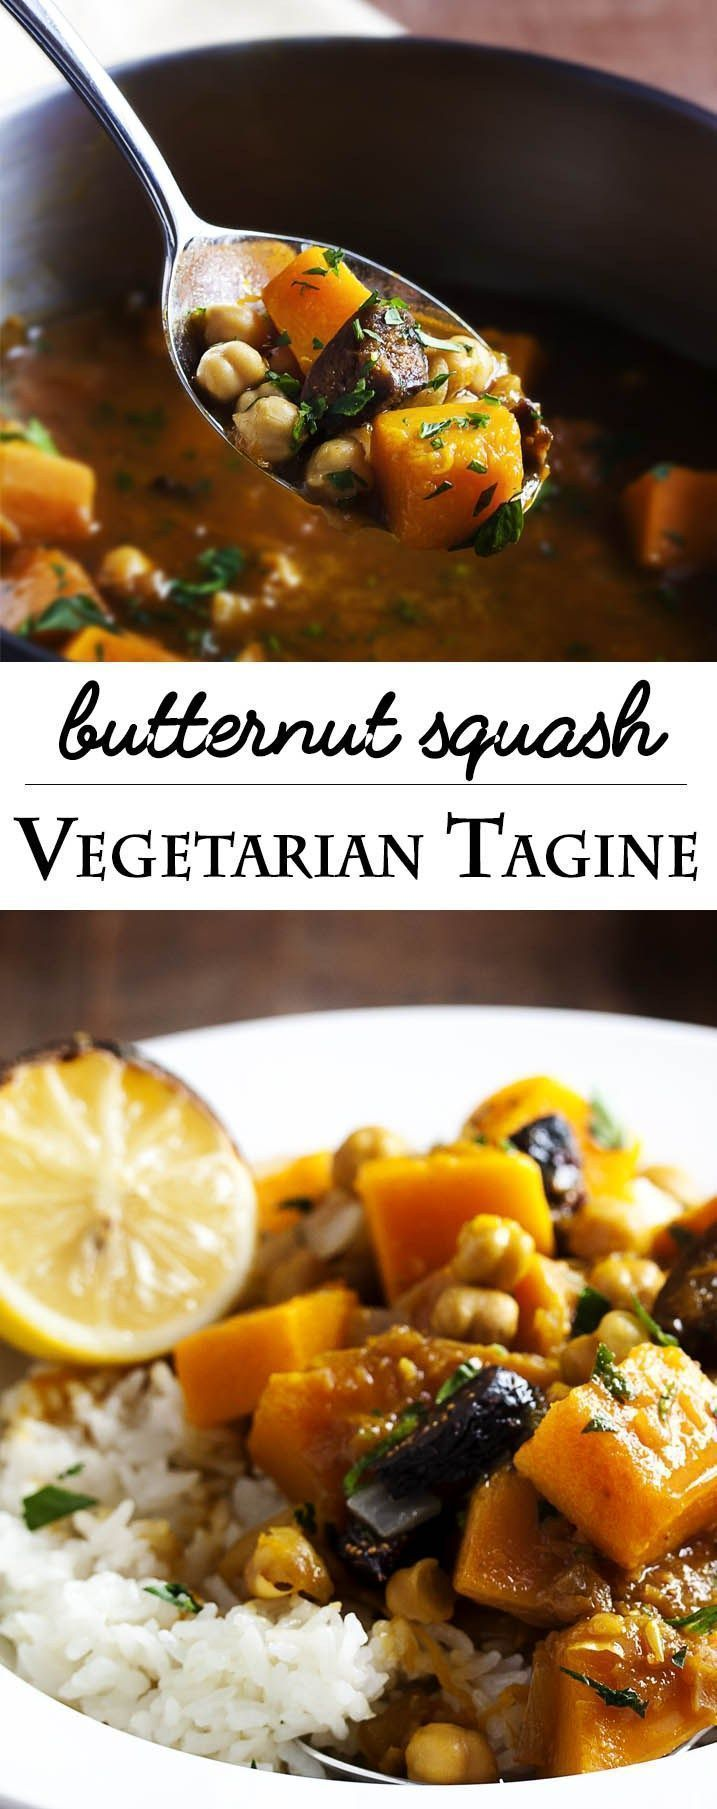 Vegetarian Butternut Squash Tagine - Need a quick vegetarian entree? You won't miss the meat in this flavorful and rich tasting vegetarian butternut squash tagine. It's sweet and spicy and yummy. And it's vegan so long as you skip the optional yogurt! | justalittlebitofb...